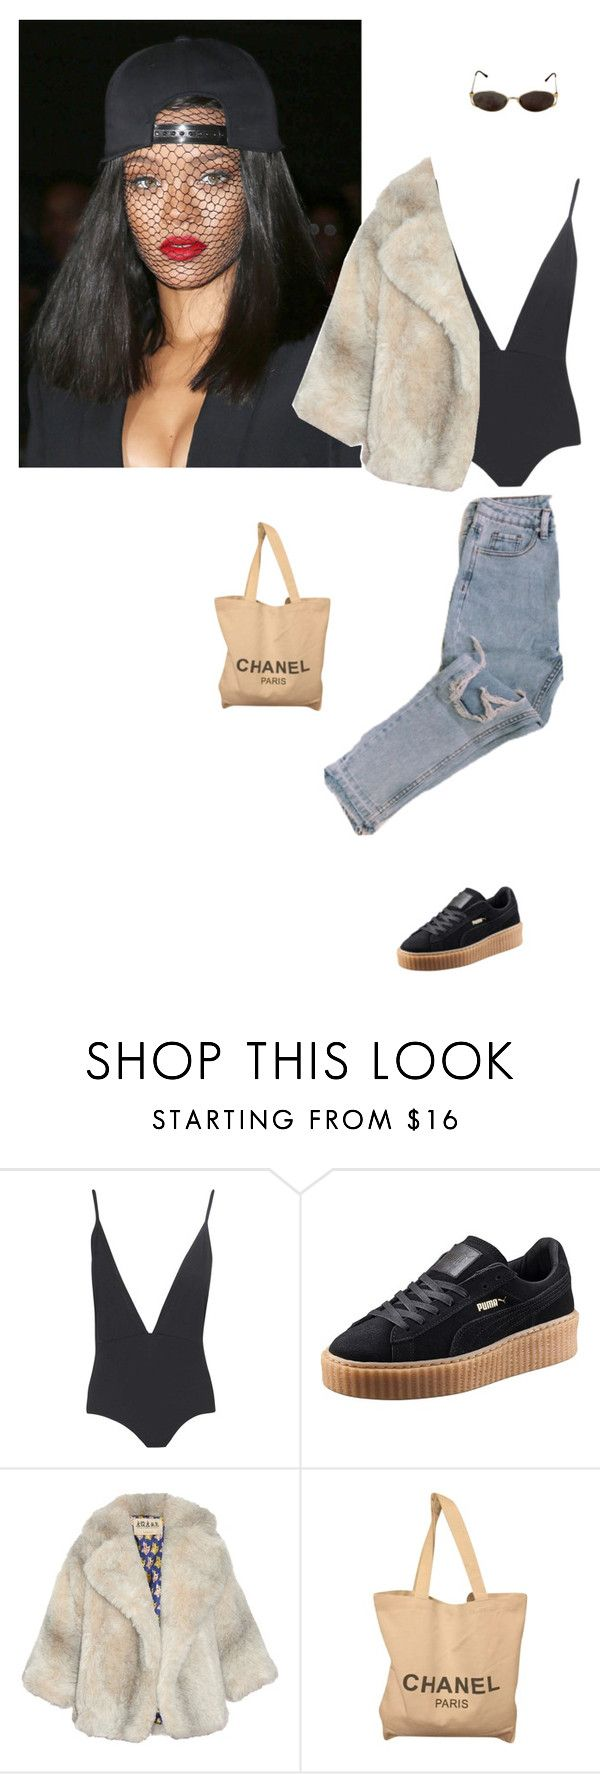 """""""Badass"""" by grungegal ❤ liked on Polyvore featuring Boohoo, Yves Saint Laurent, Puma, A.W.A.K.E. and Chanel"""